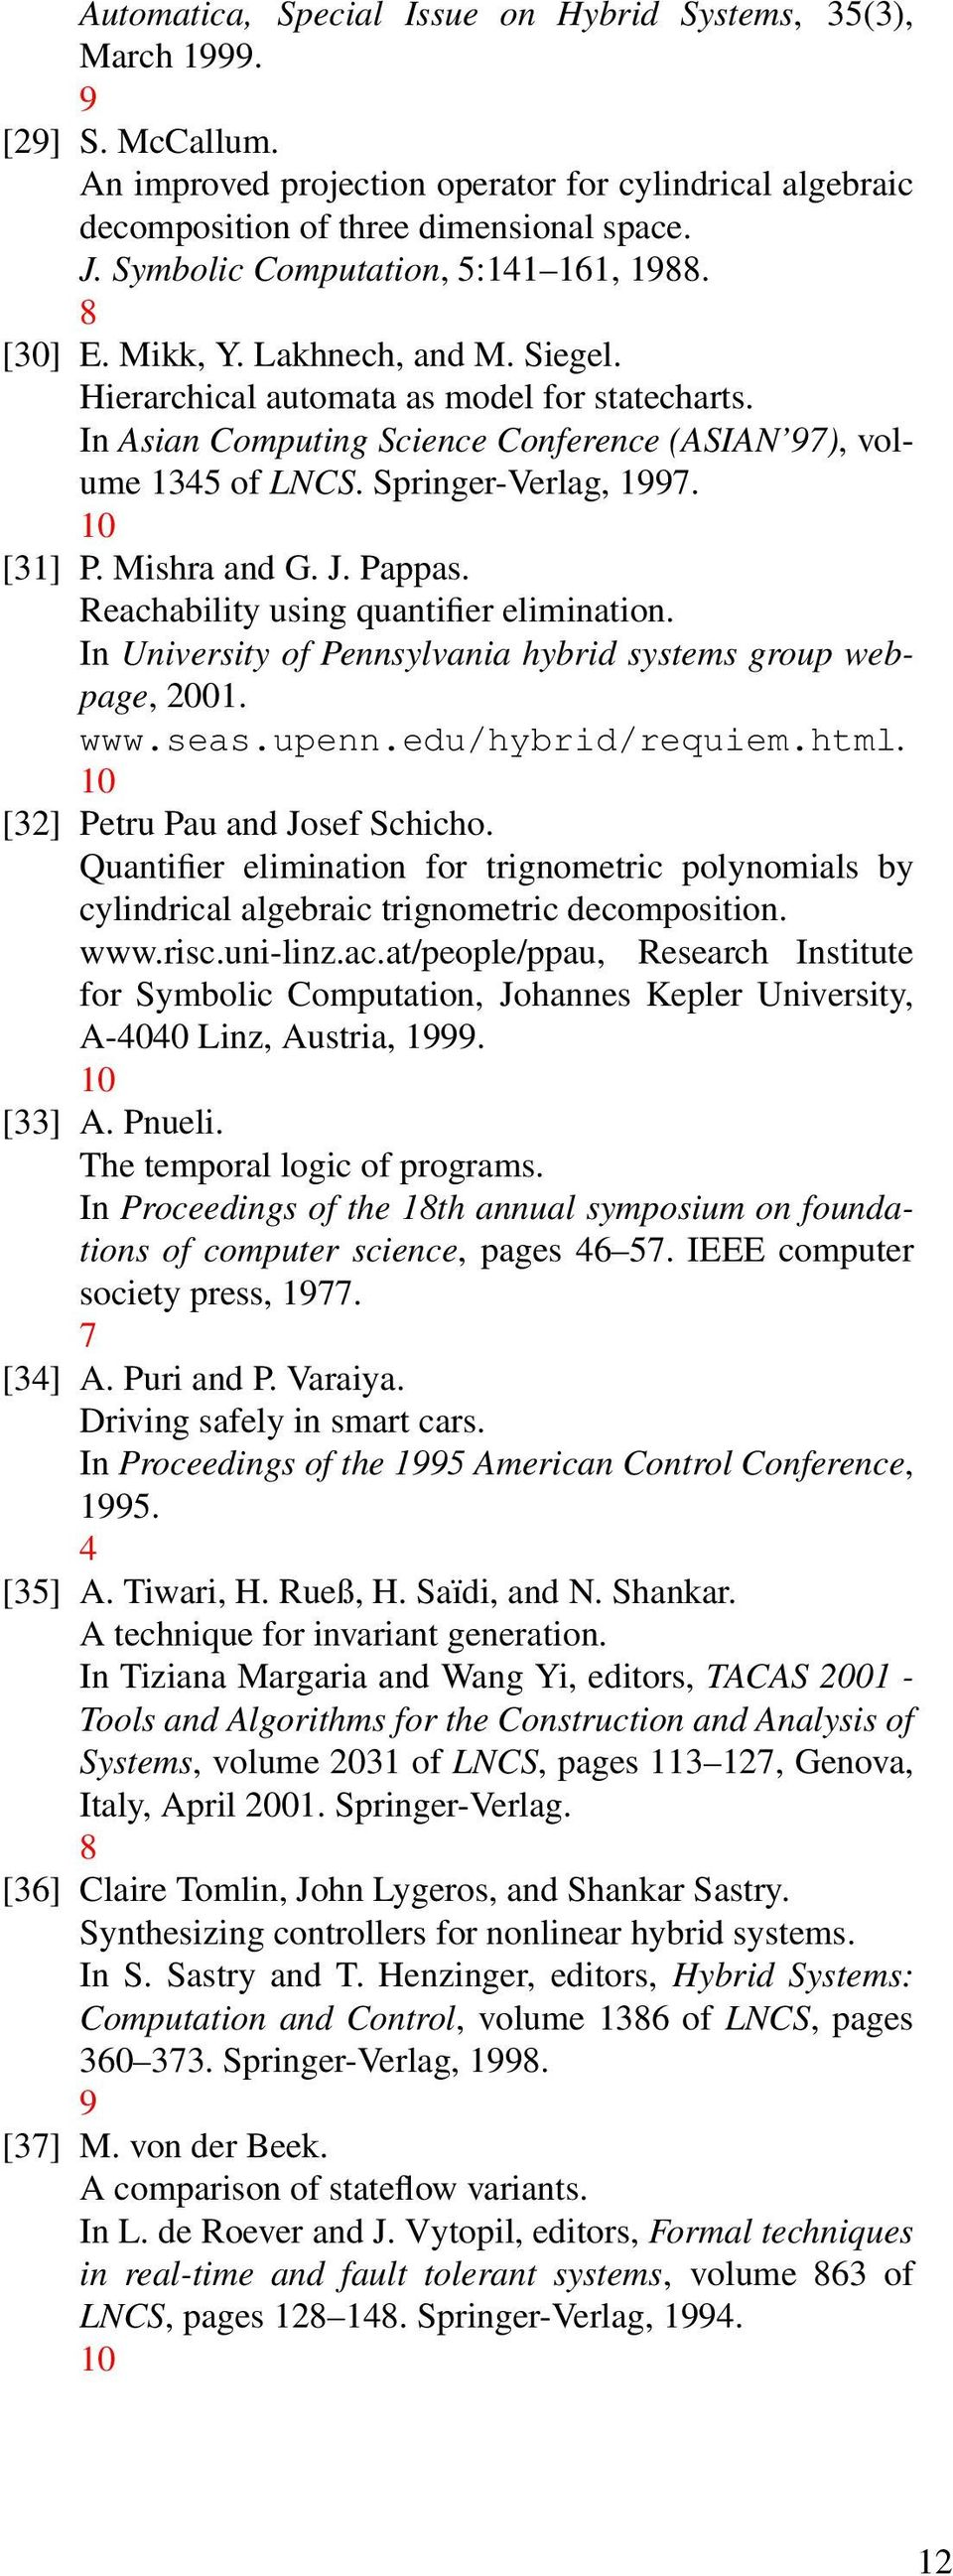 Springer-Verlag, 997. 0 [3] P. Mishra and G. J. Pappas. Reachability using quantifier elimination. In University of Pennsylvania hybrid systems group webpage, 200. www.seas.upenn.edu/hybrid/requiem.